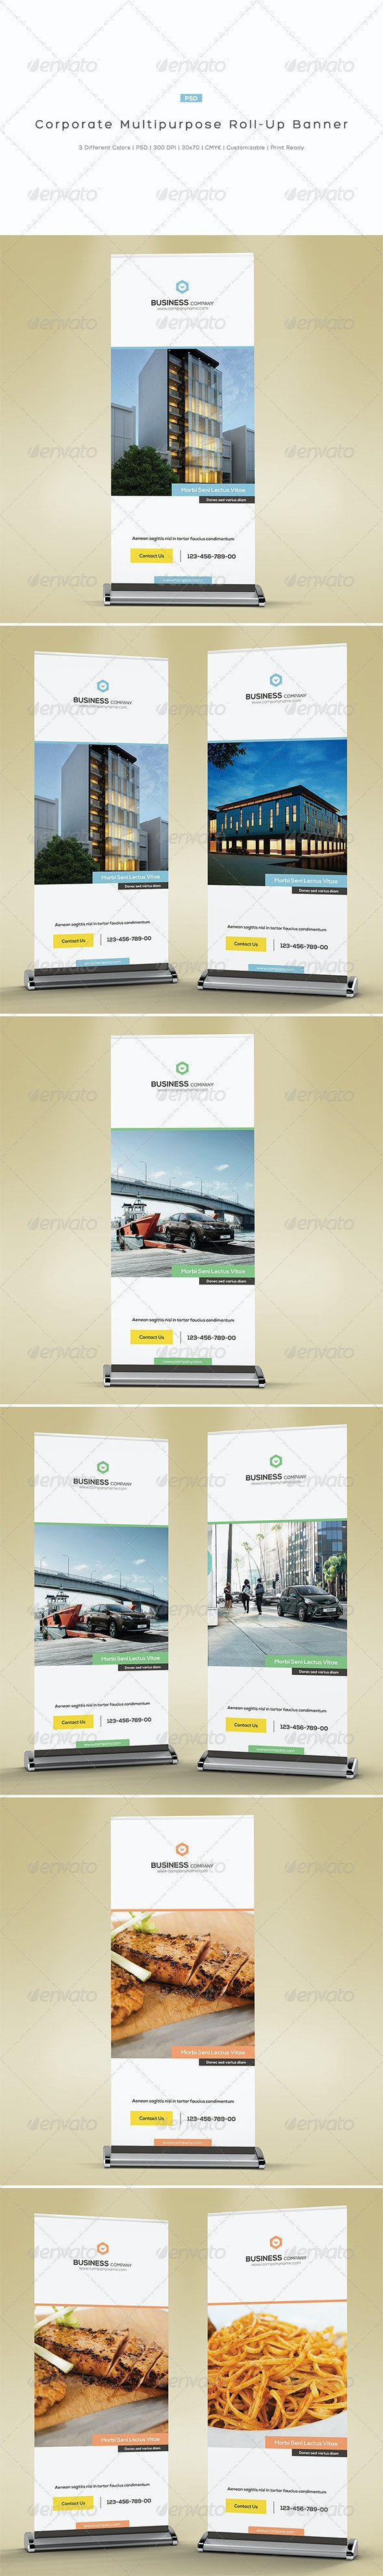 Corporate Multipurpose Roll-Up Banner - Signage Print Templates